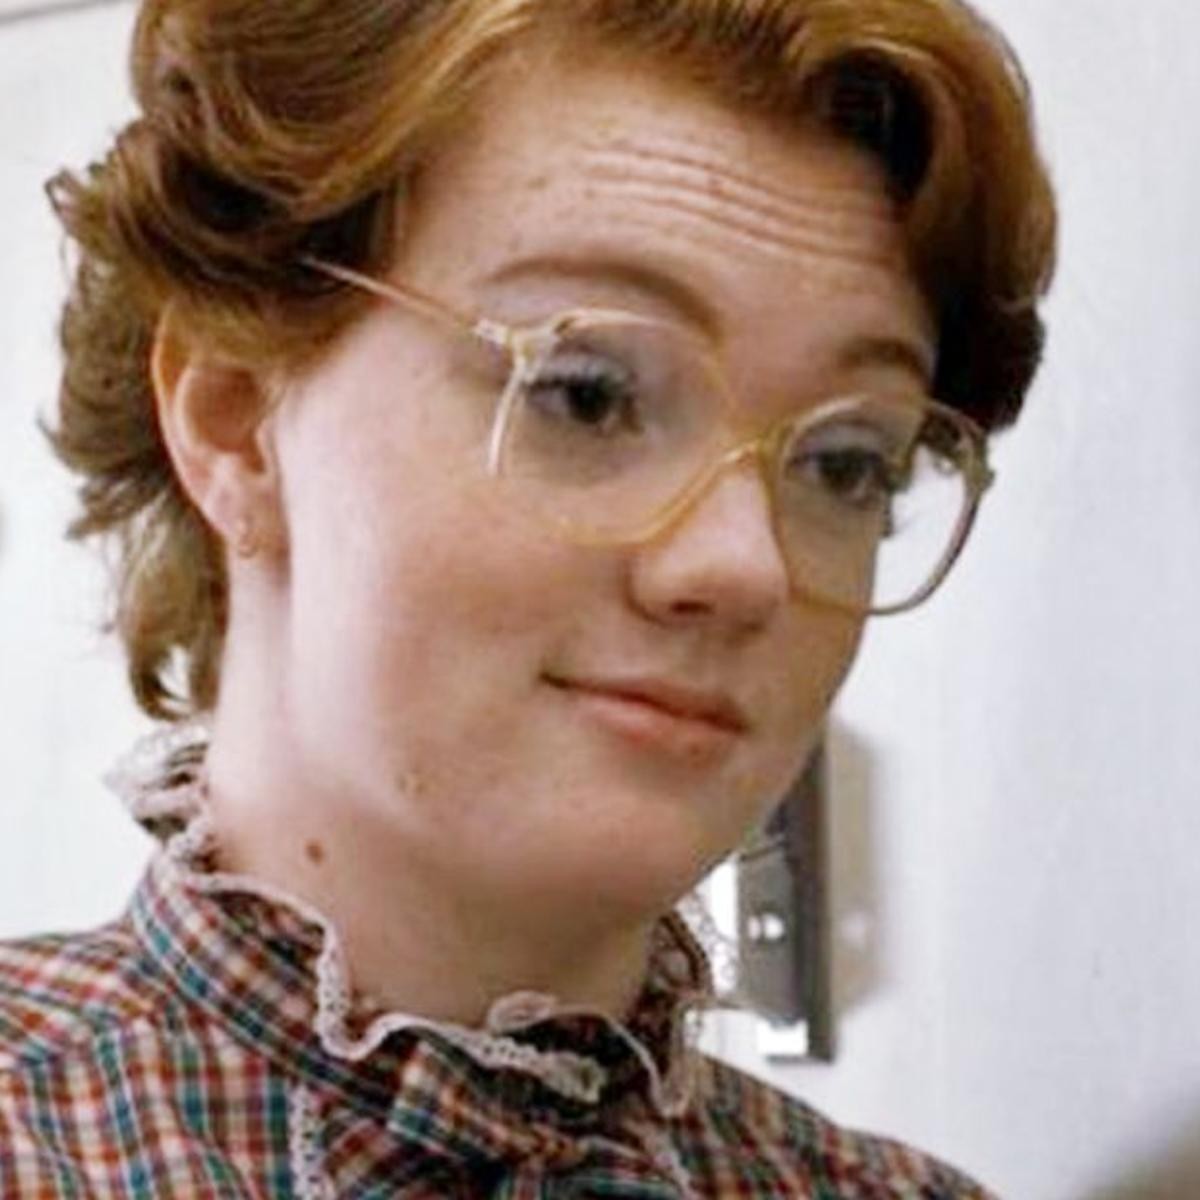 Become Barb with Spirit Halloweenu0027s new line of Stranger Things costumes  sc 1 st  Syfy & Become Barb with Spirit Halloweenu0027s new line of Stranger Things ...